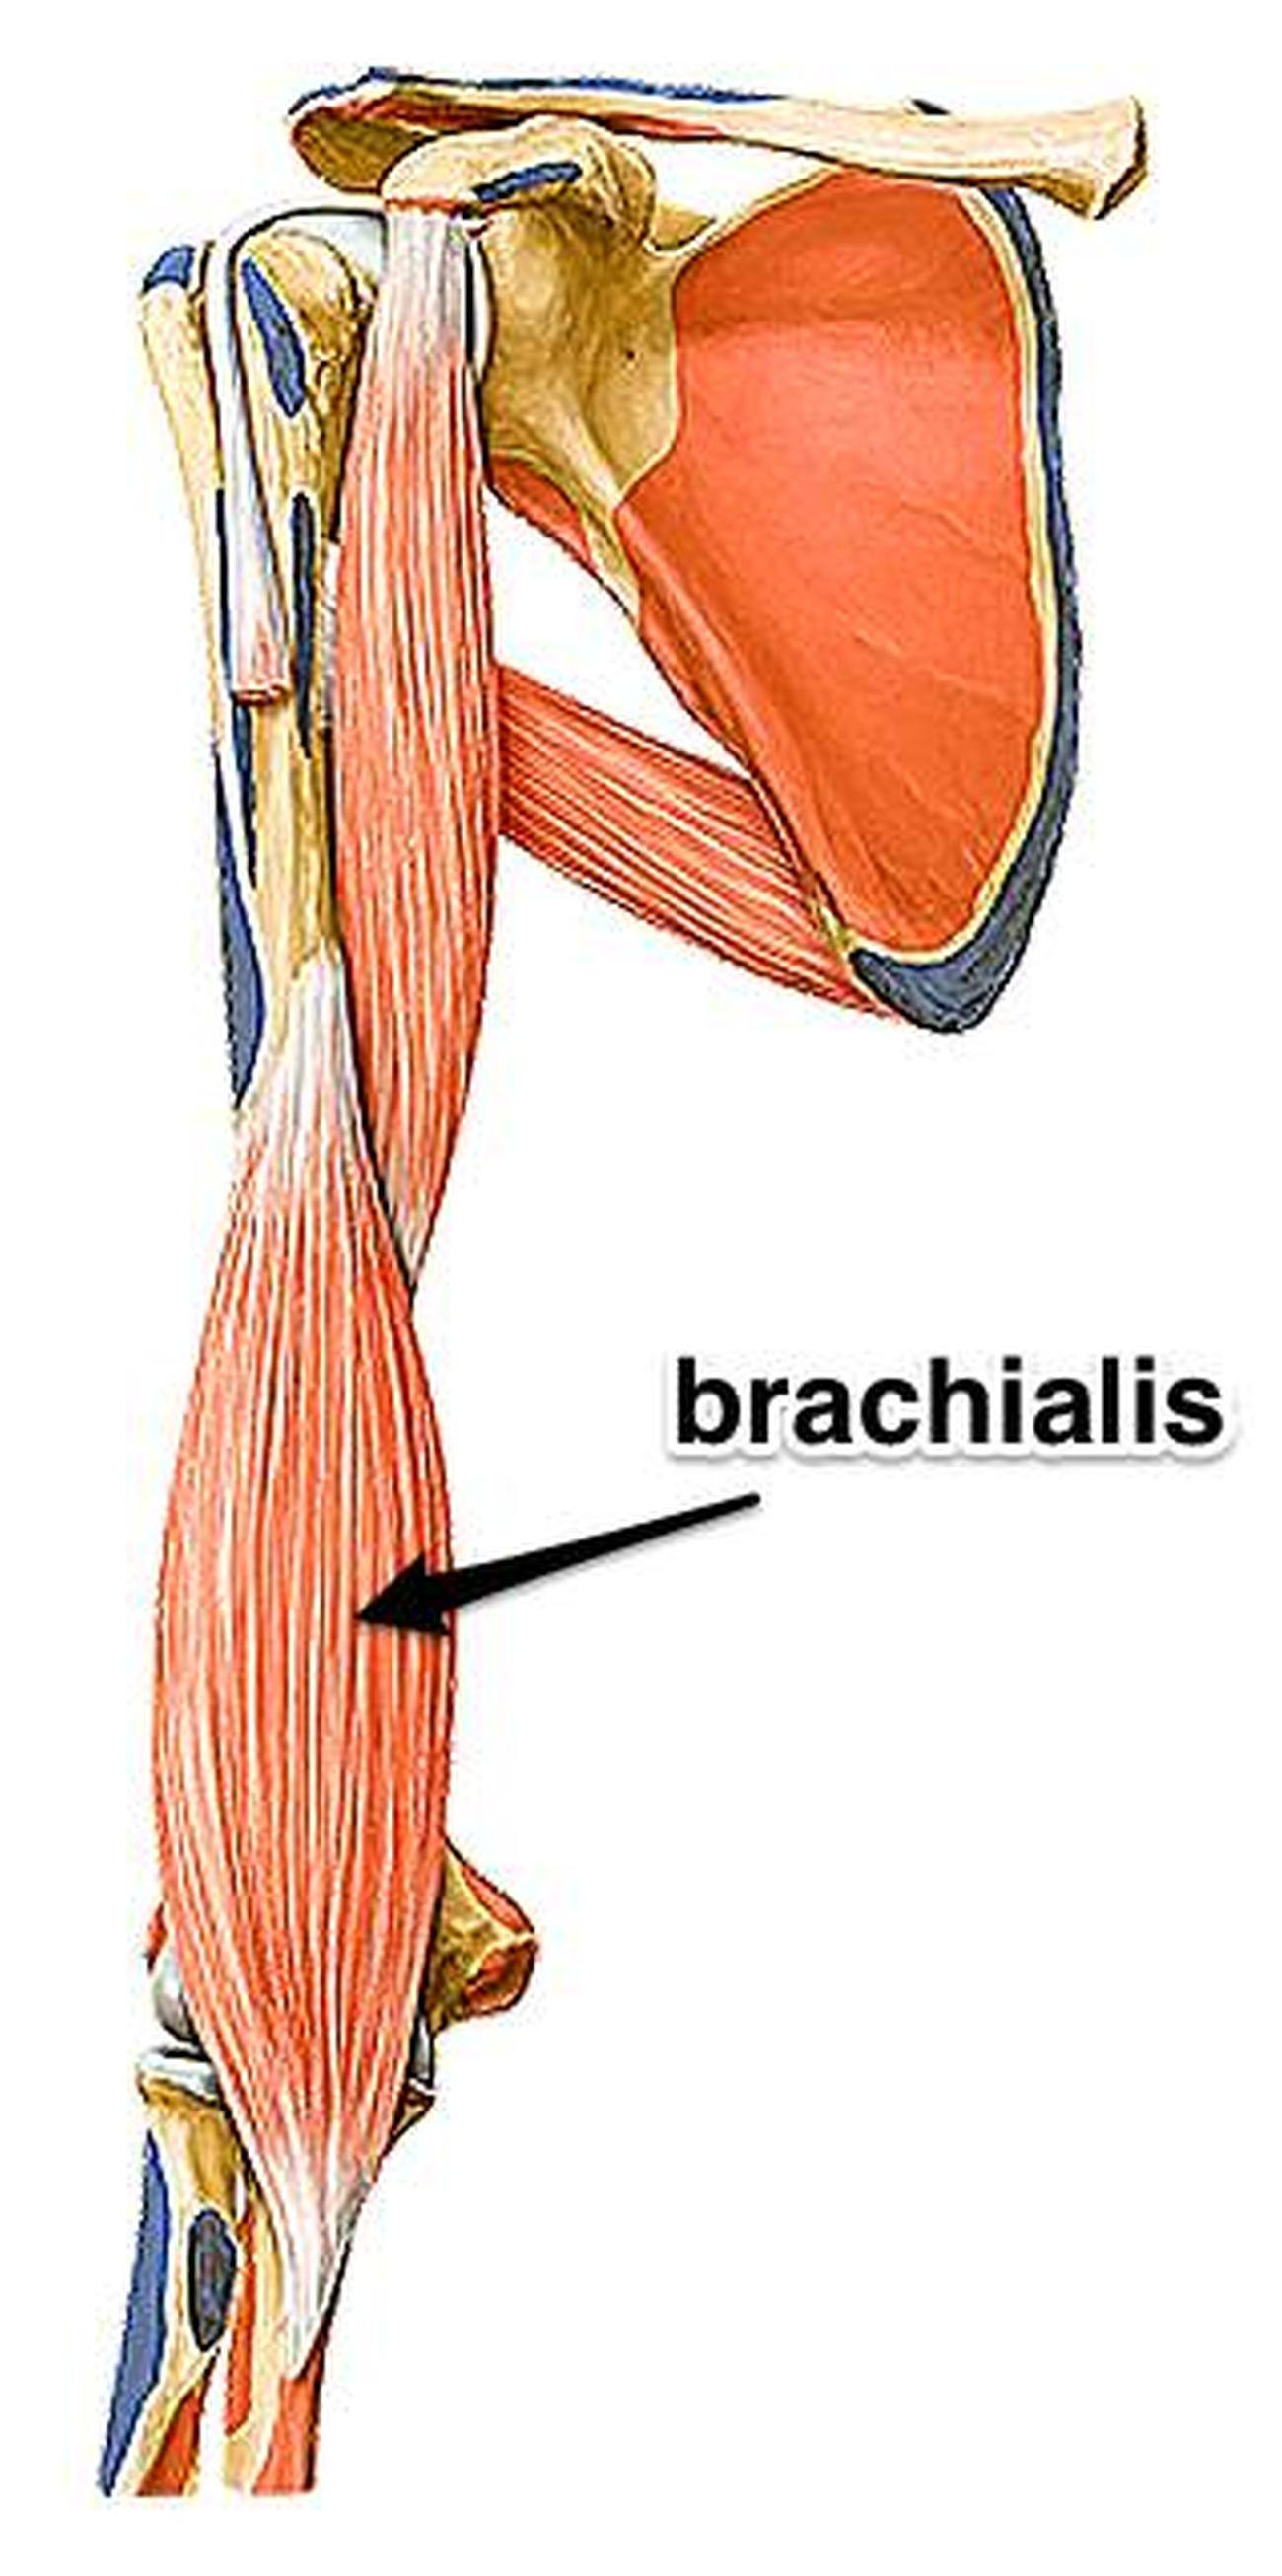 Pictures Of Brachialis